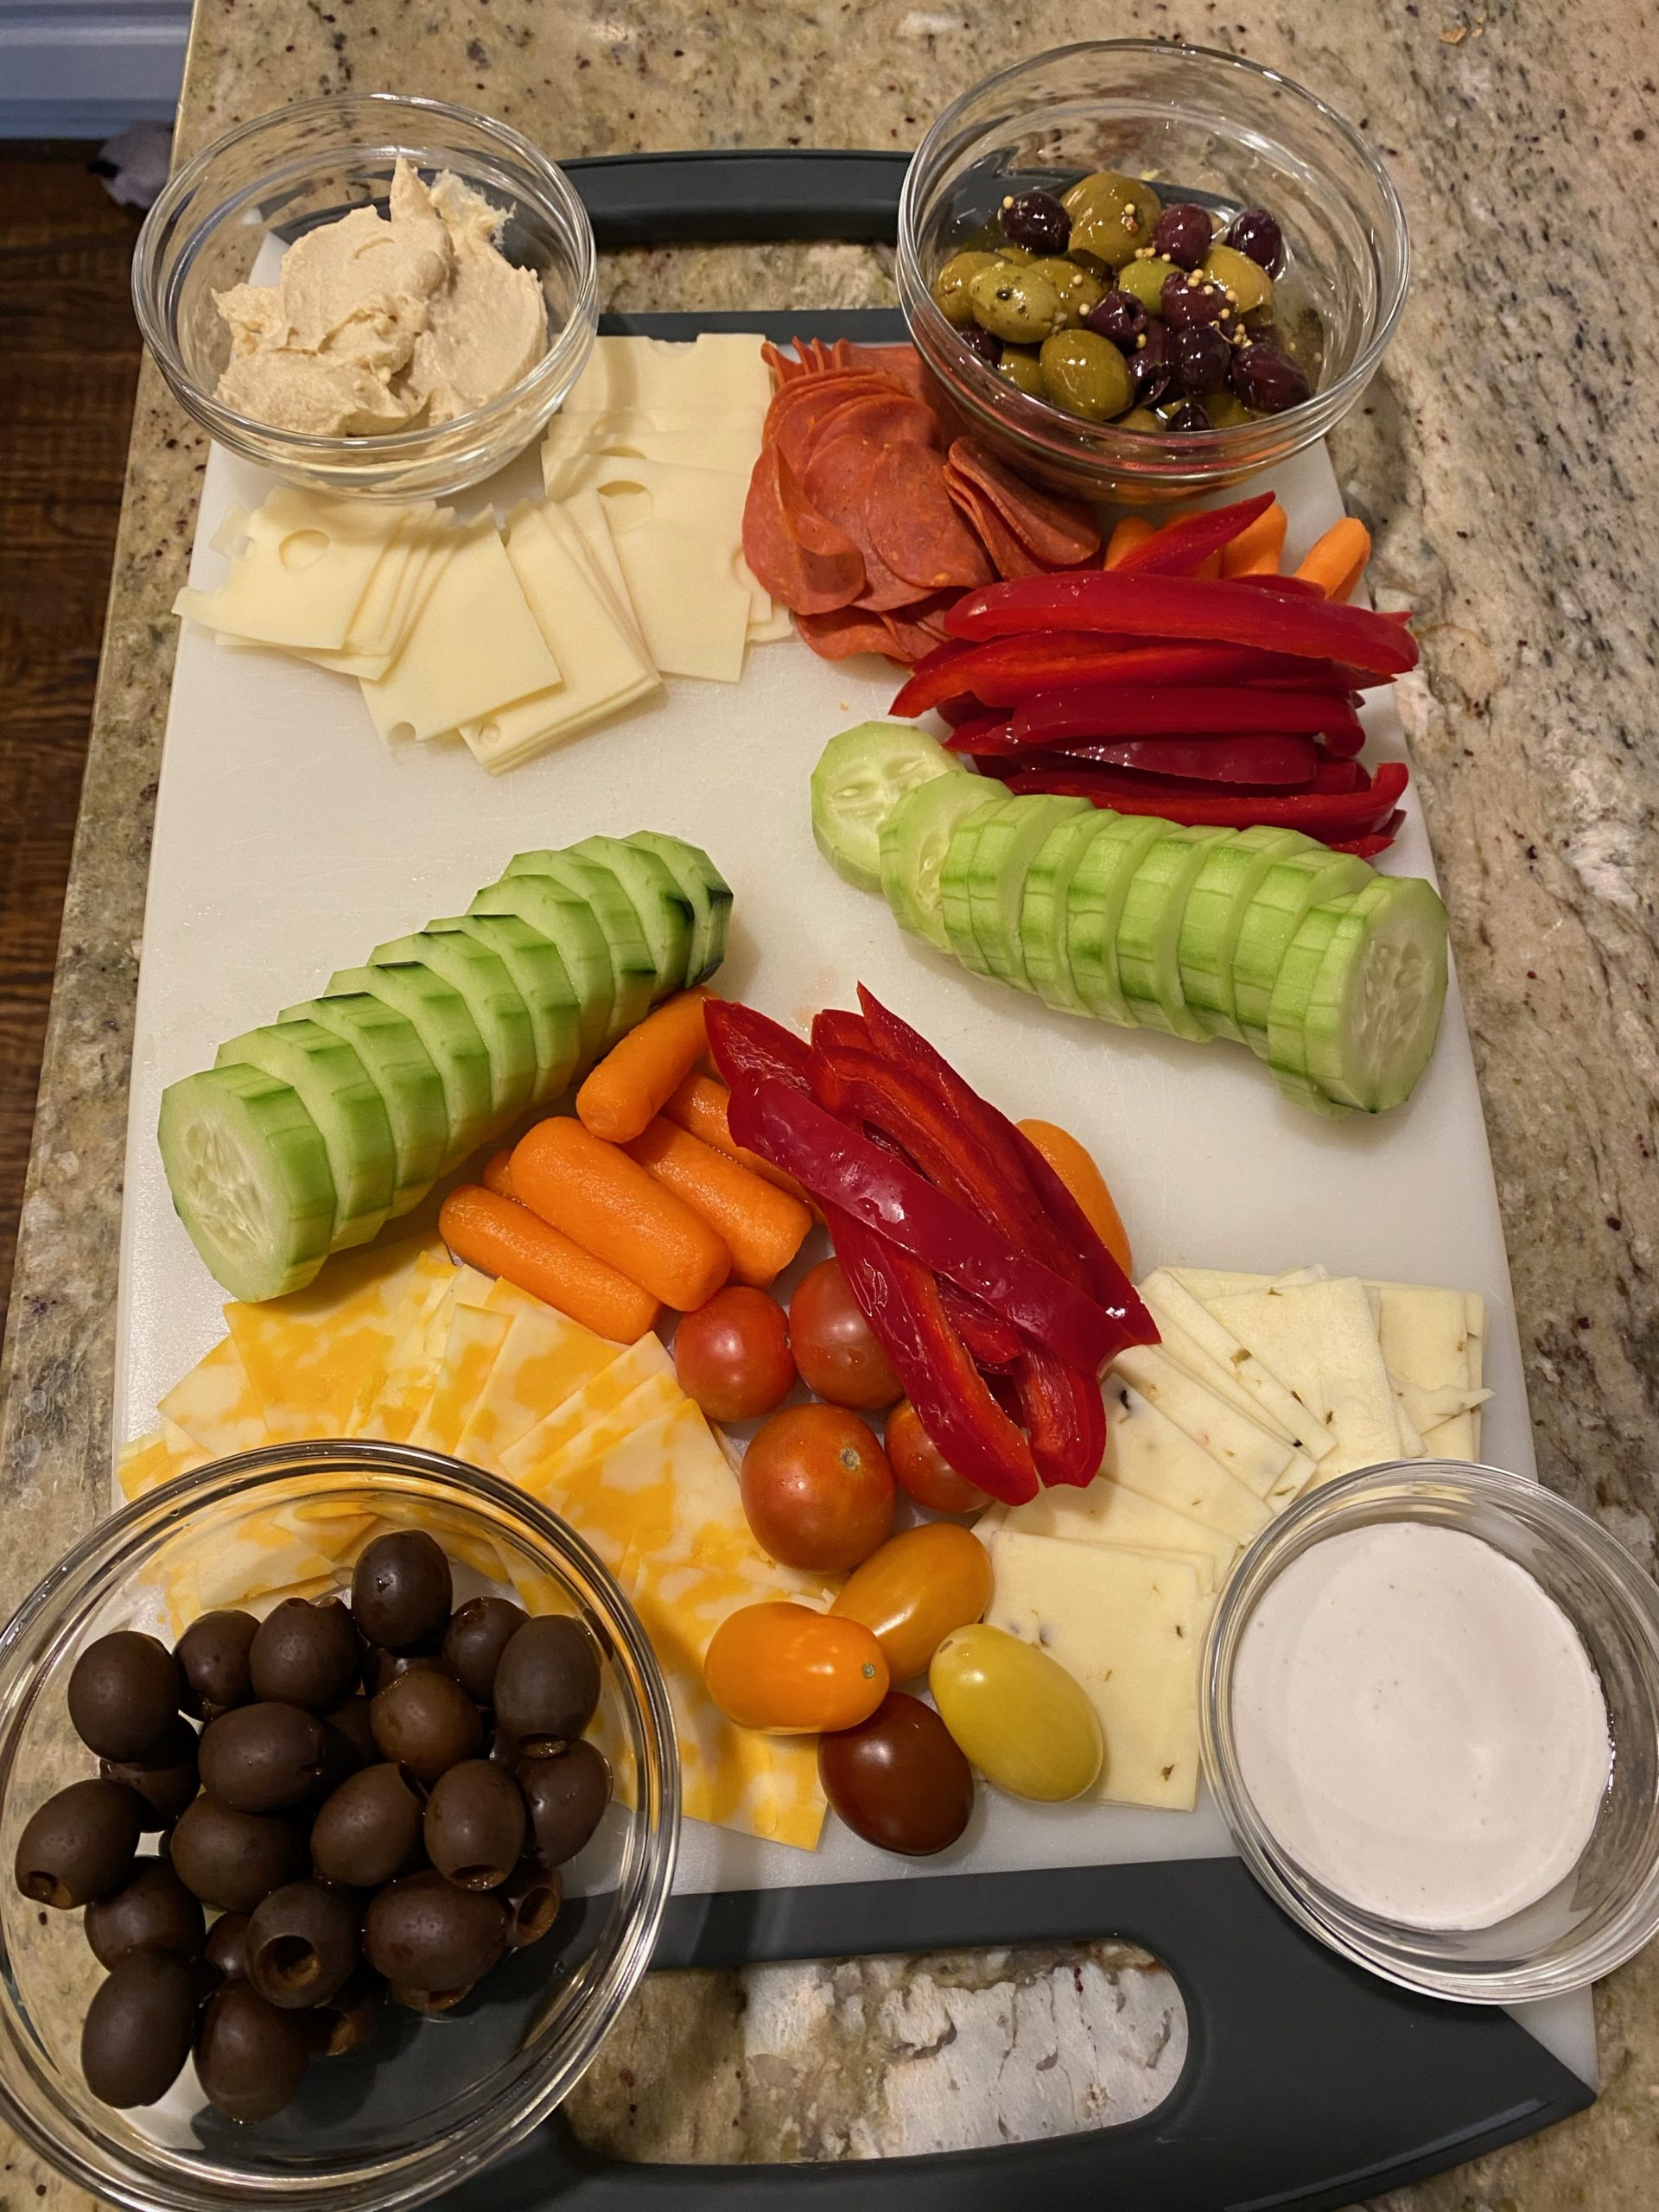 cutting board with dips, olives, cheese, meats, and veggies